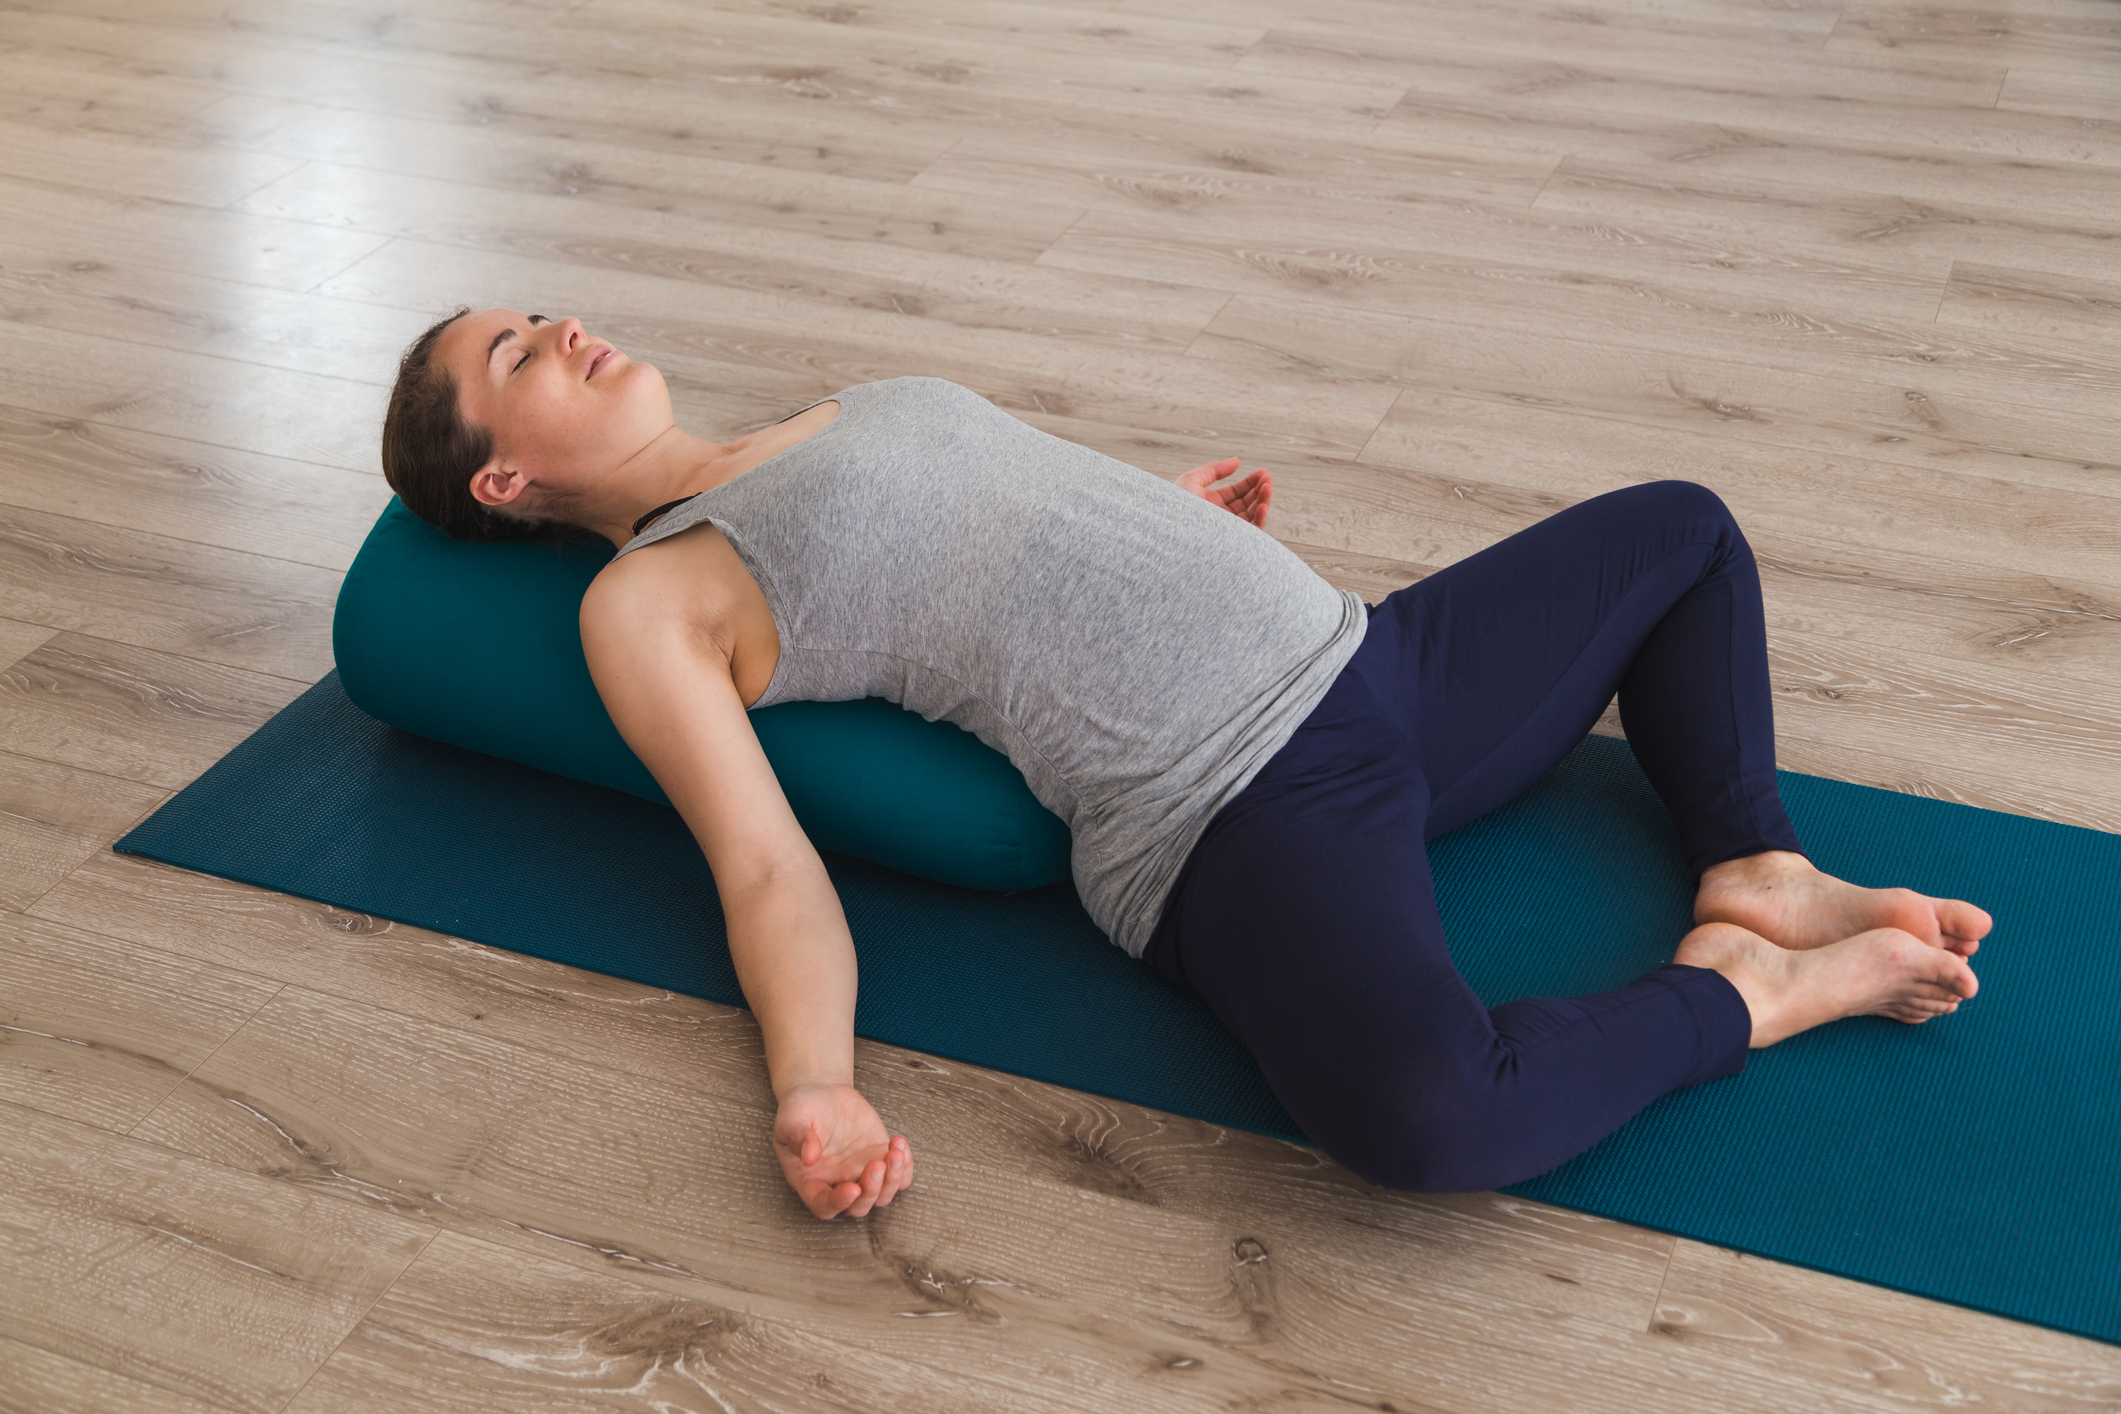 Relaxation in One Yoga Pose: A Step-by-Step Guide